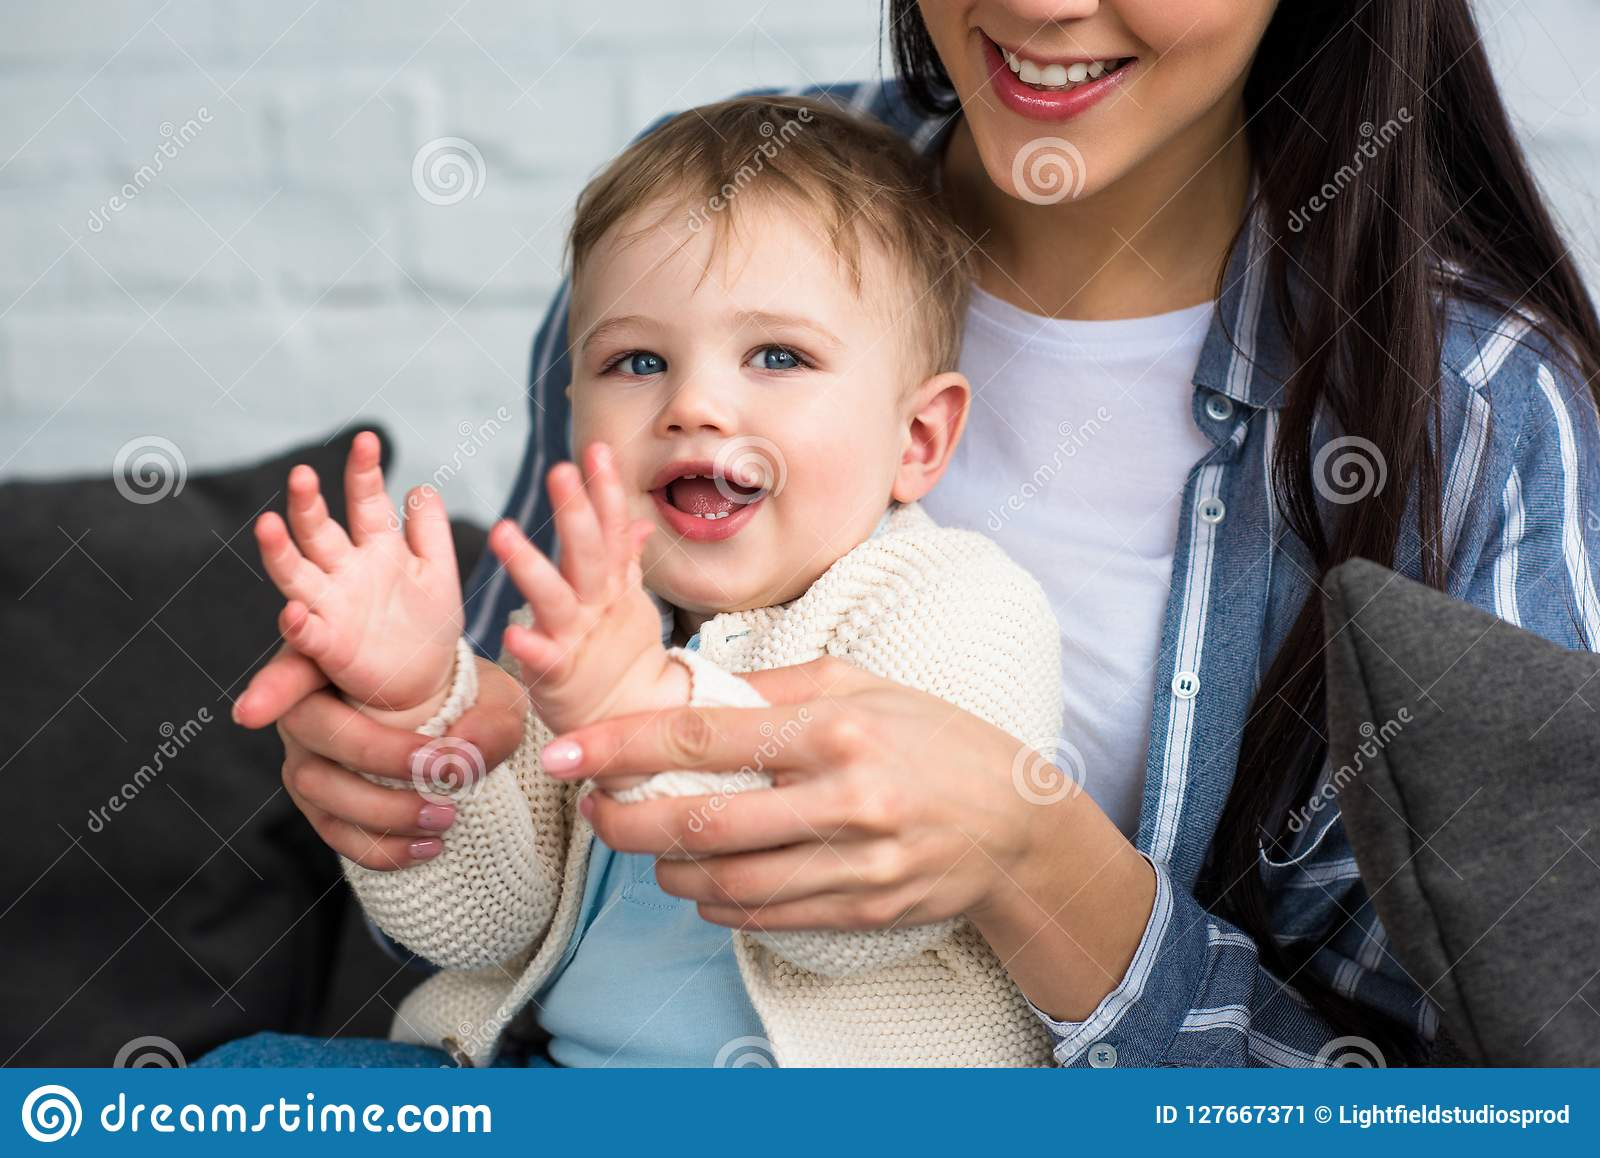 partial view of smiling mother playing with little baby